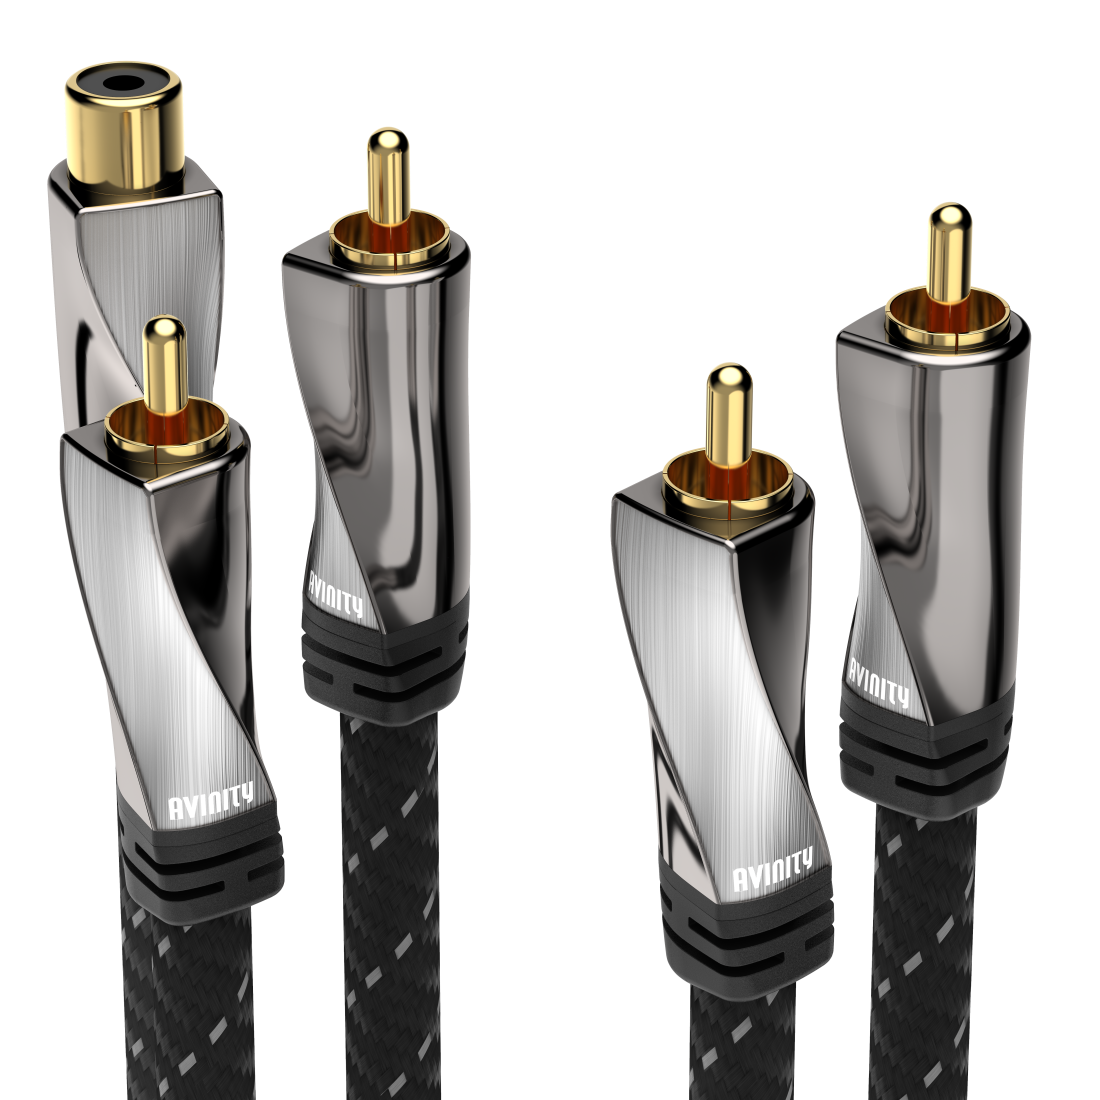 abx High-Res Image - Avinity, Subwoofer Cable + Adapter, RCA socket - 2 RCA plugs, fabric, gold-pl., 2 m